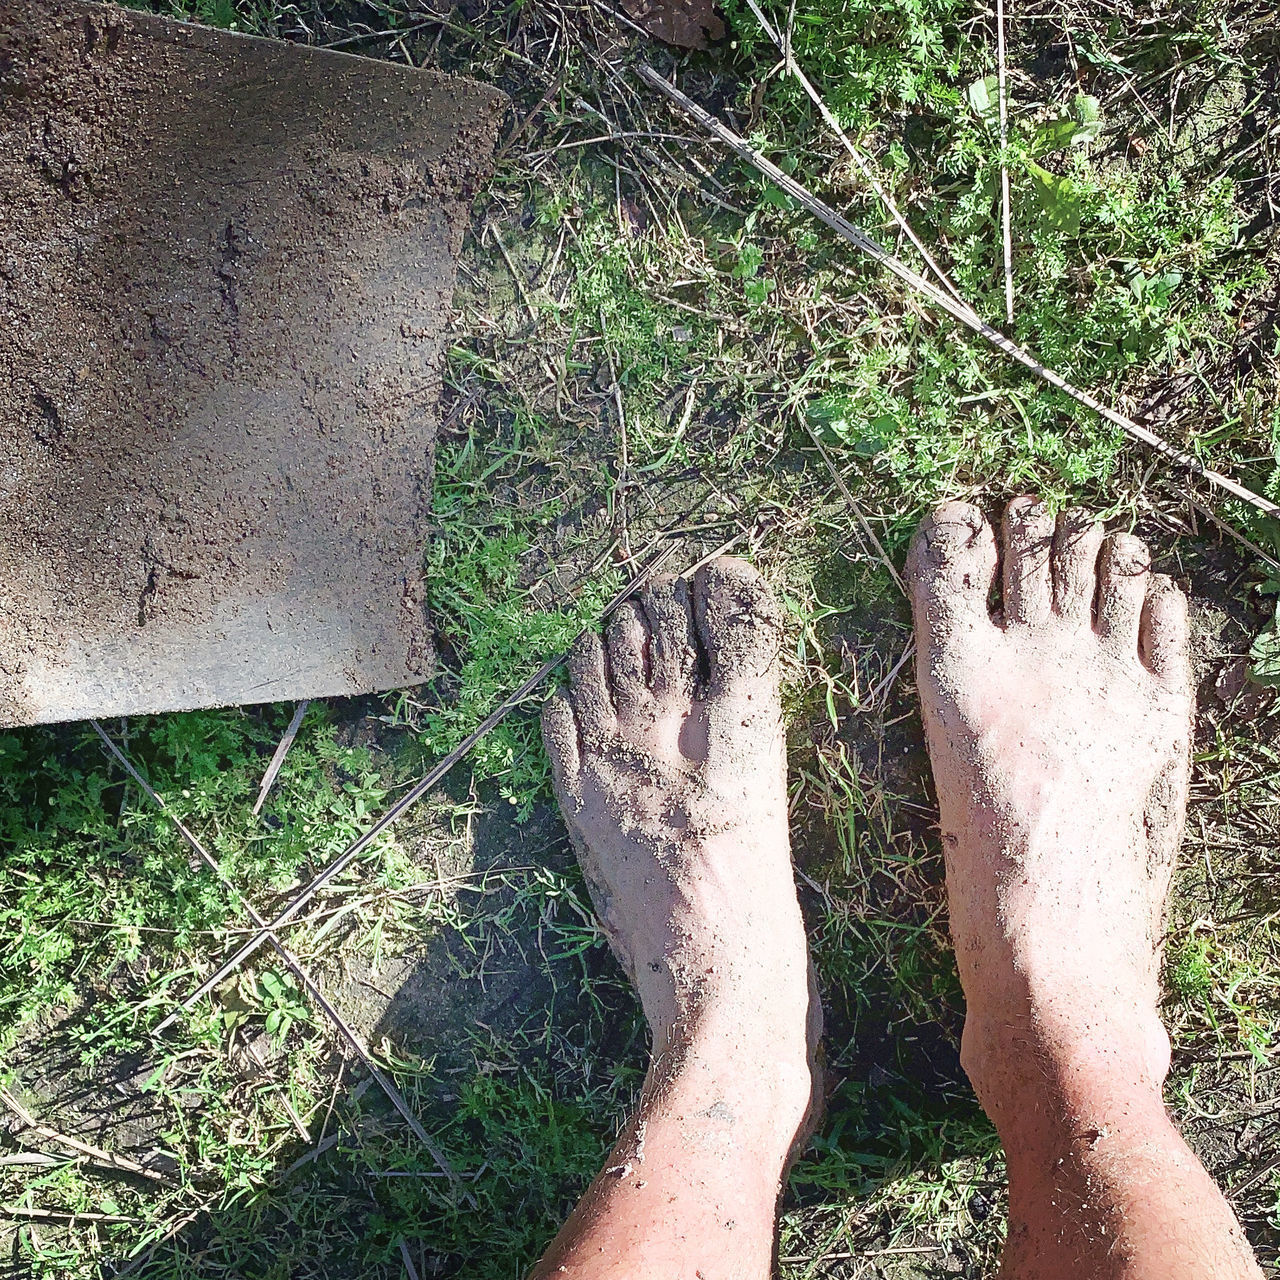 human body part, low section, human leg, body part, barefoot, one person, personal perspective, land, plant, human foot, nature, real people, day, dirt, high angle view, relaxation, outdoors, unrecognizable person, lifestyles, dirty, messy, human limb